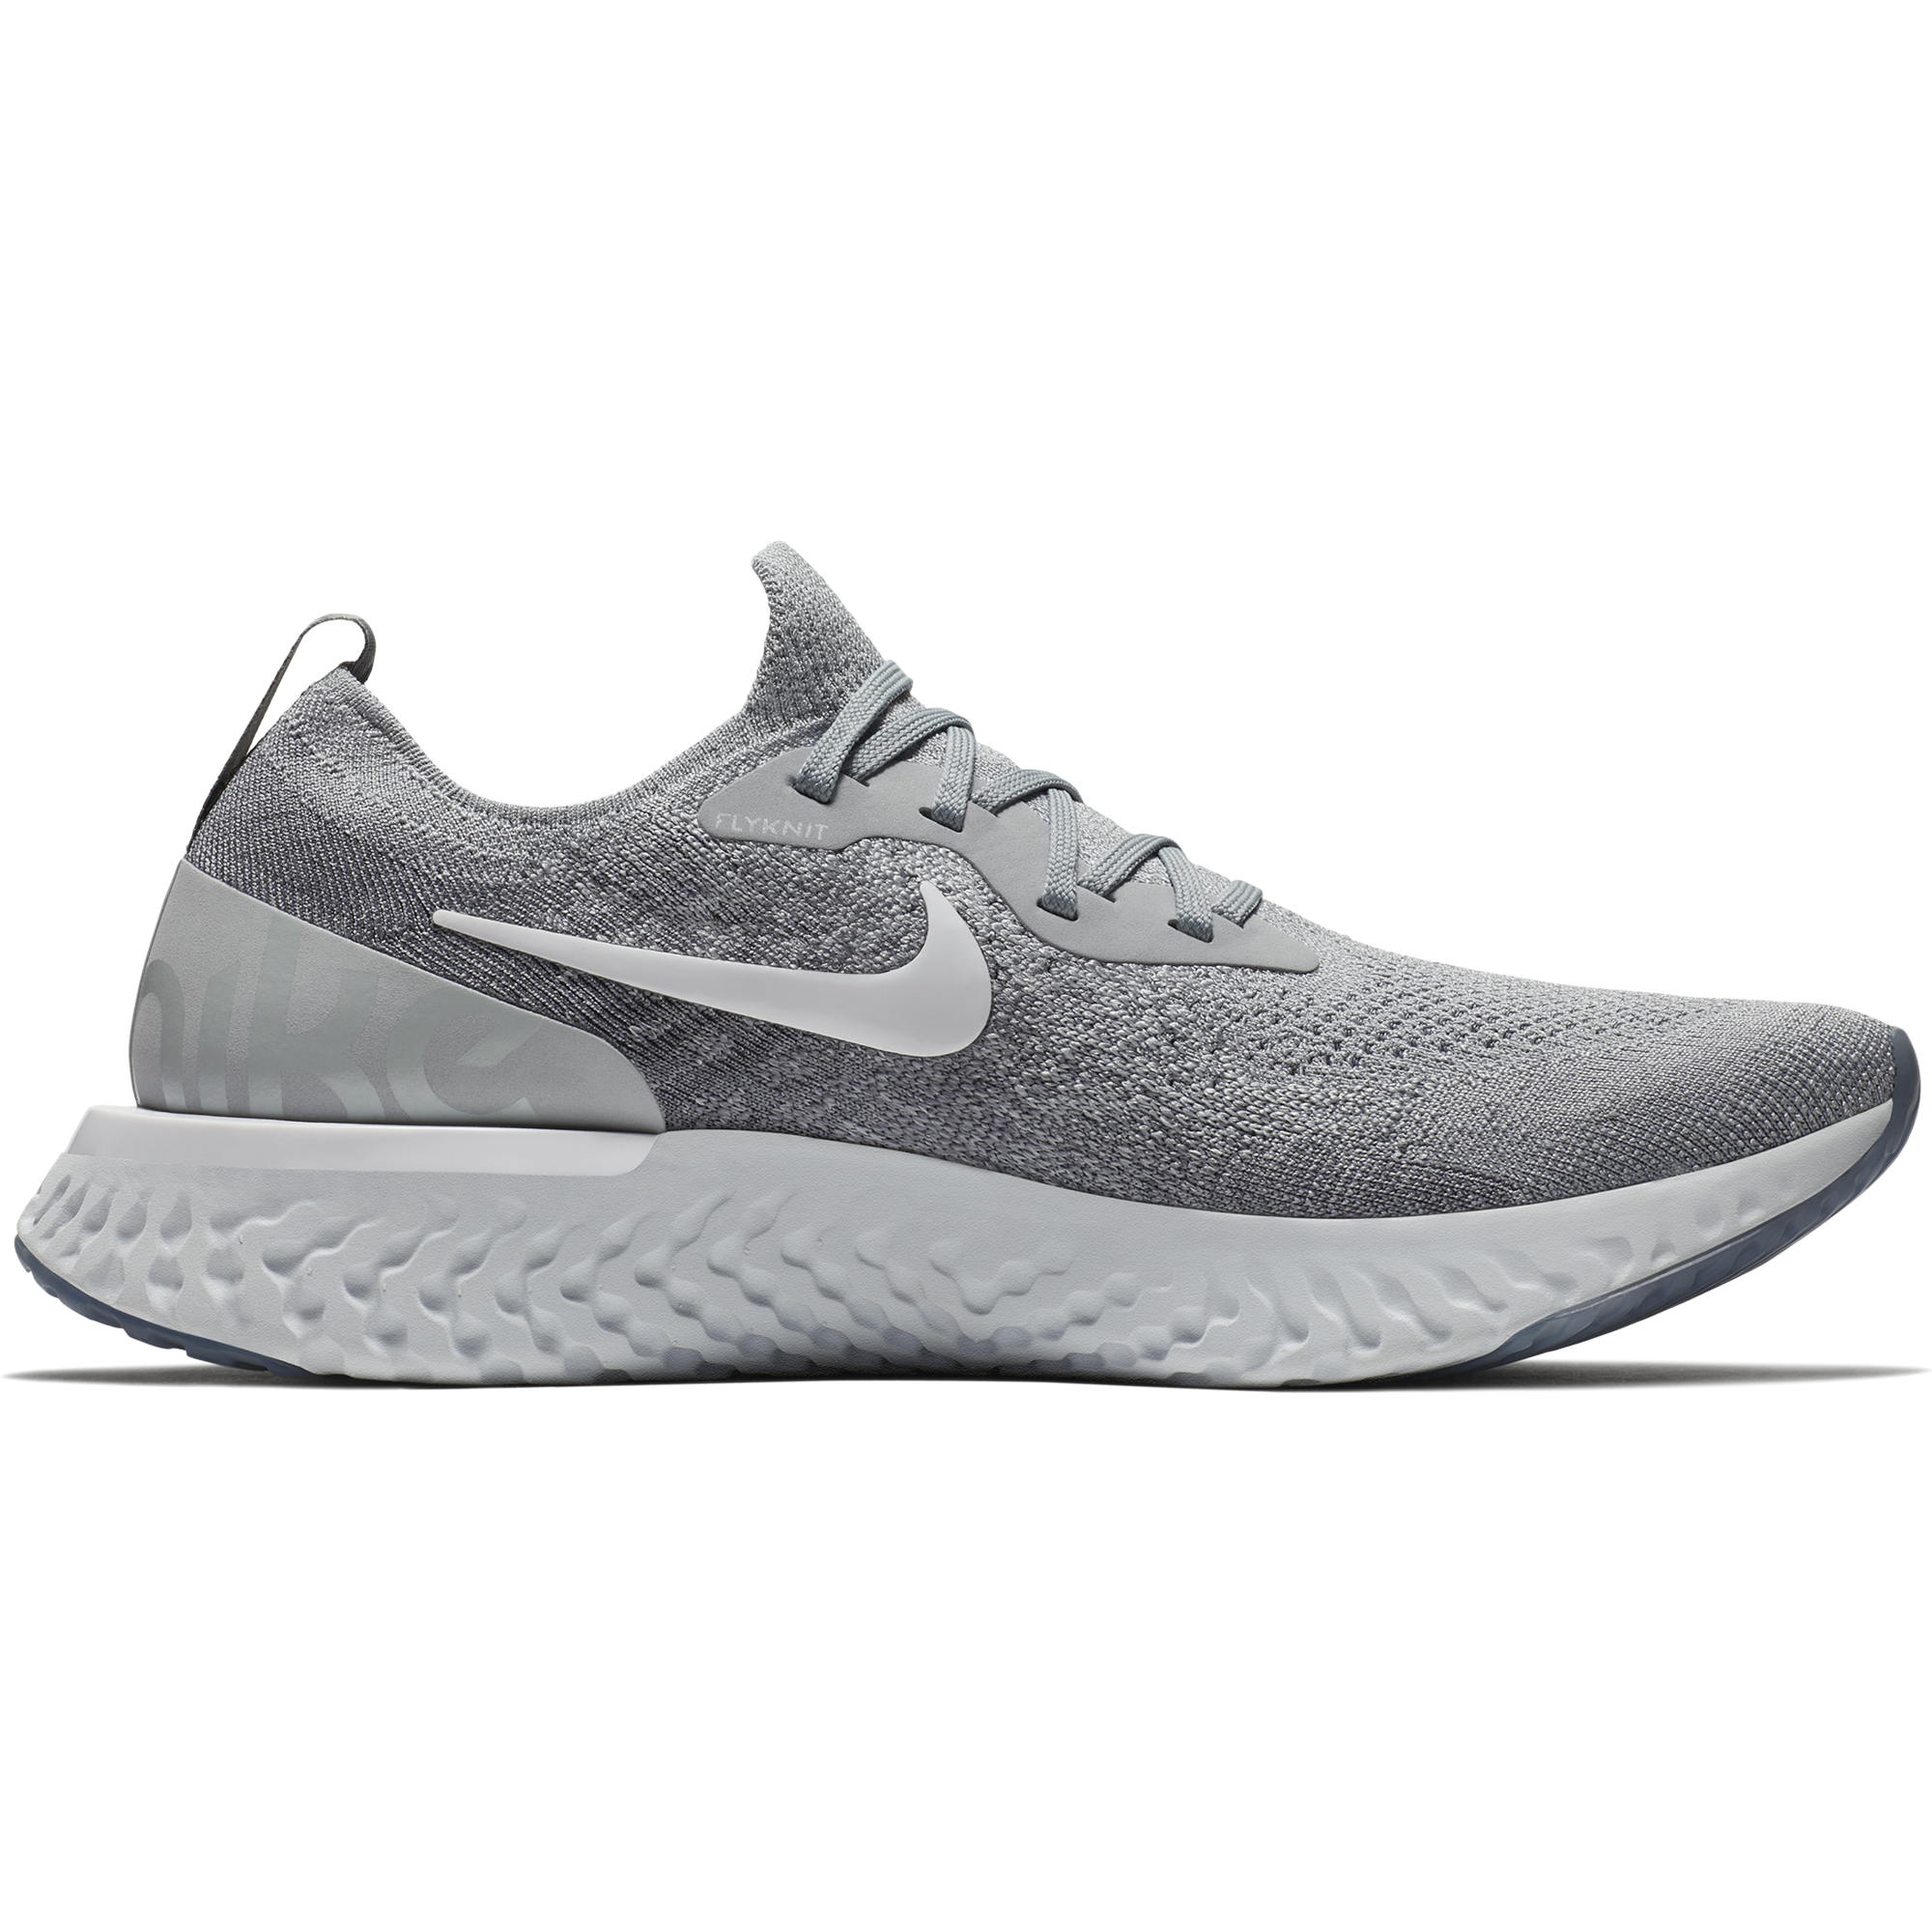 separation shoes 1c63b 28de9 ... Men s Epic React Flyknit Running Shoe - Wolf Grey White Cool Grey Pure  ...